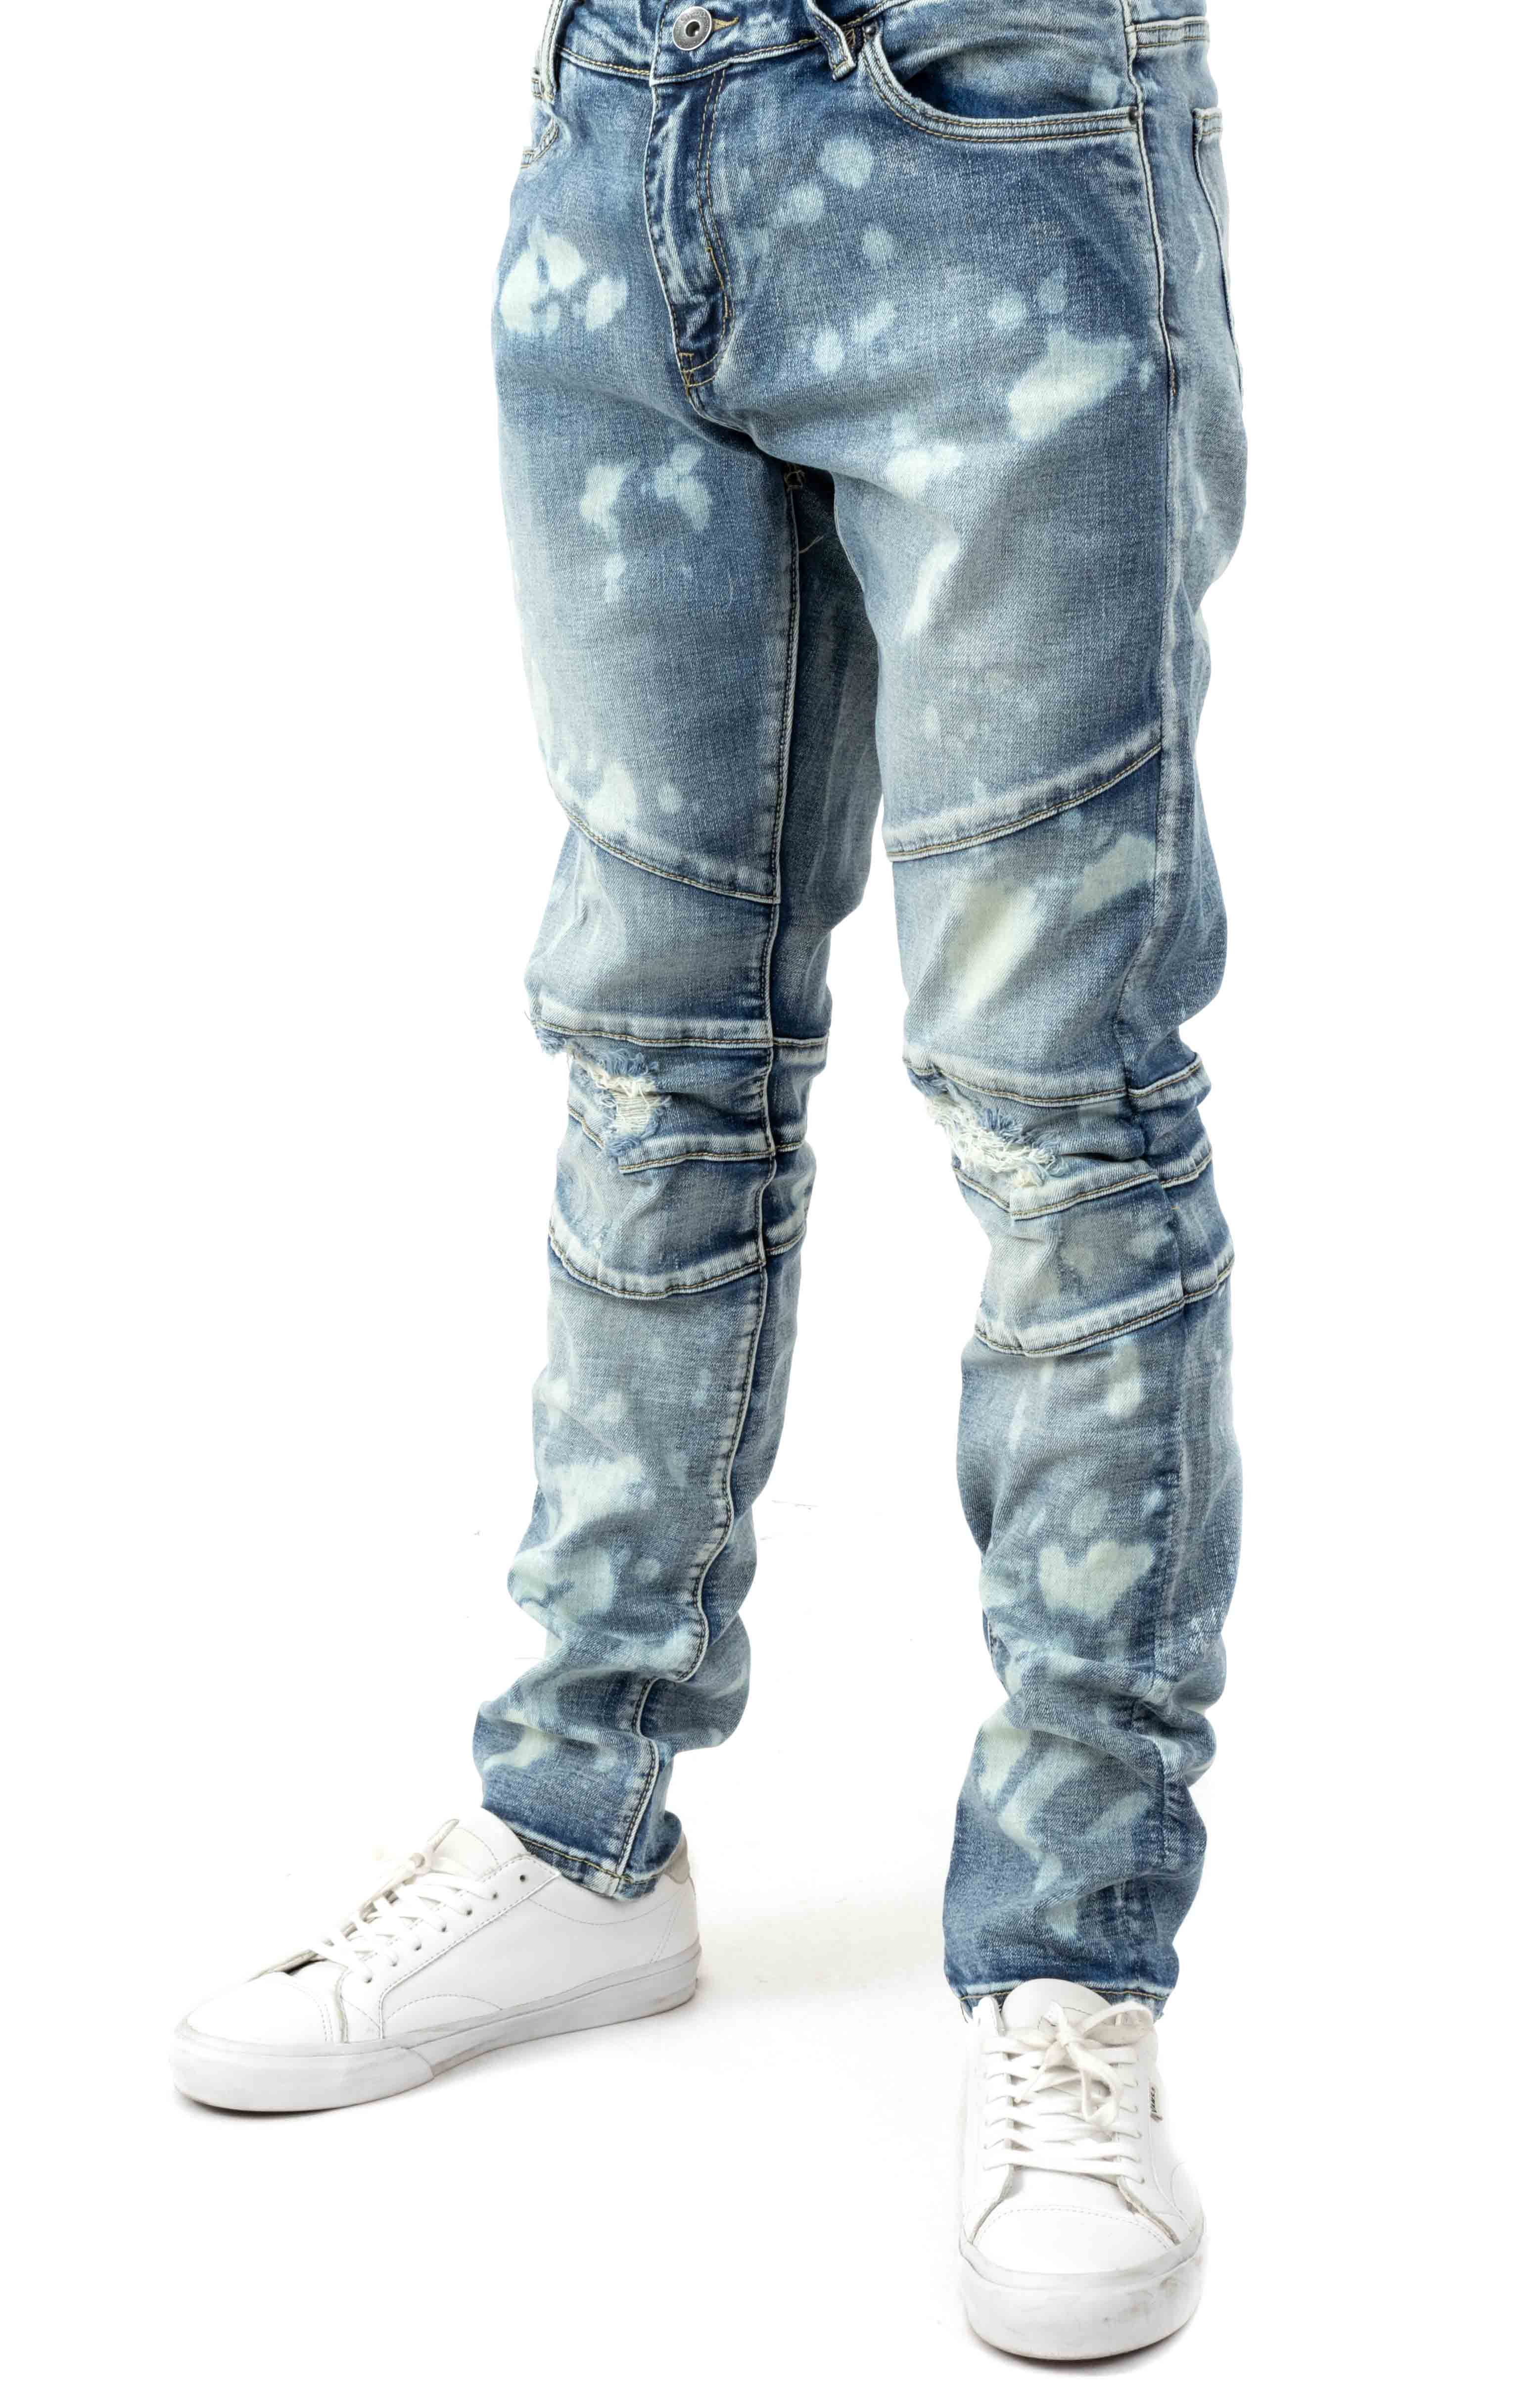 (CRYSP119-114) Montana Denim Jeans - Light Blue 1